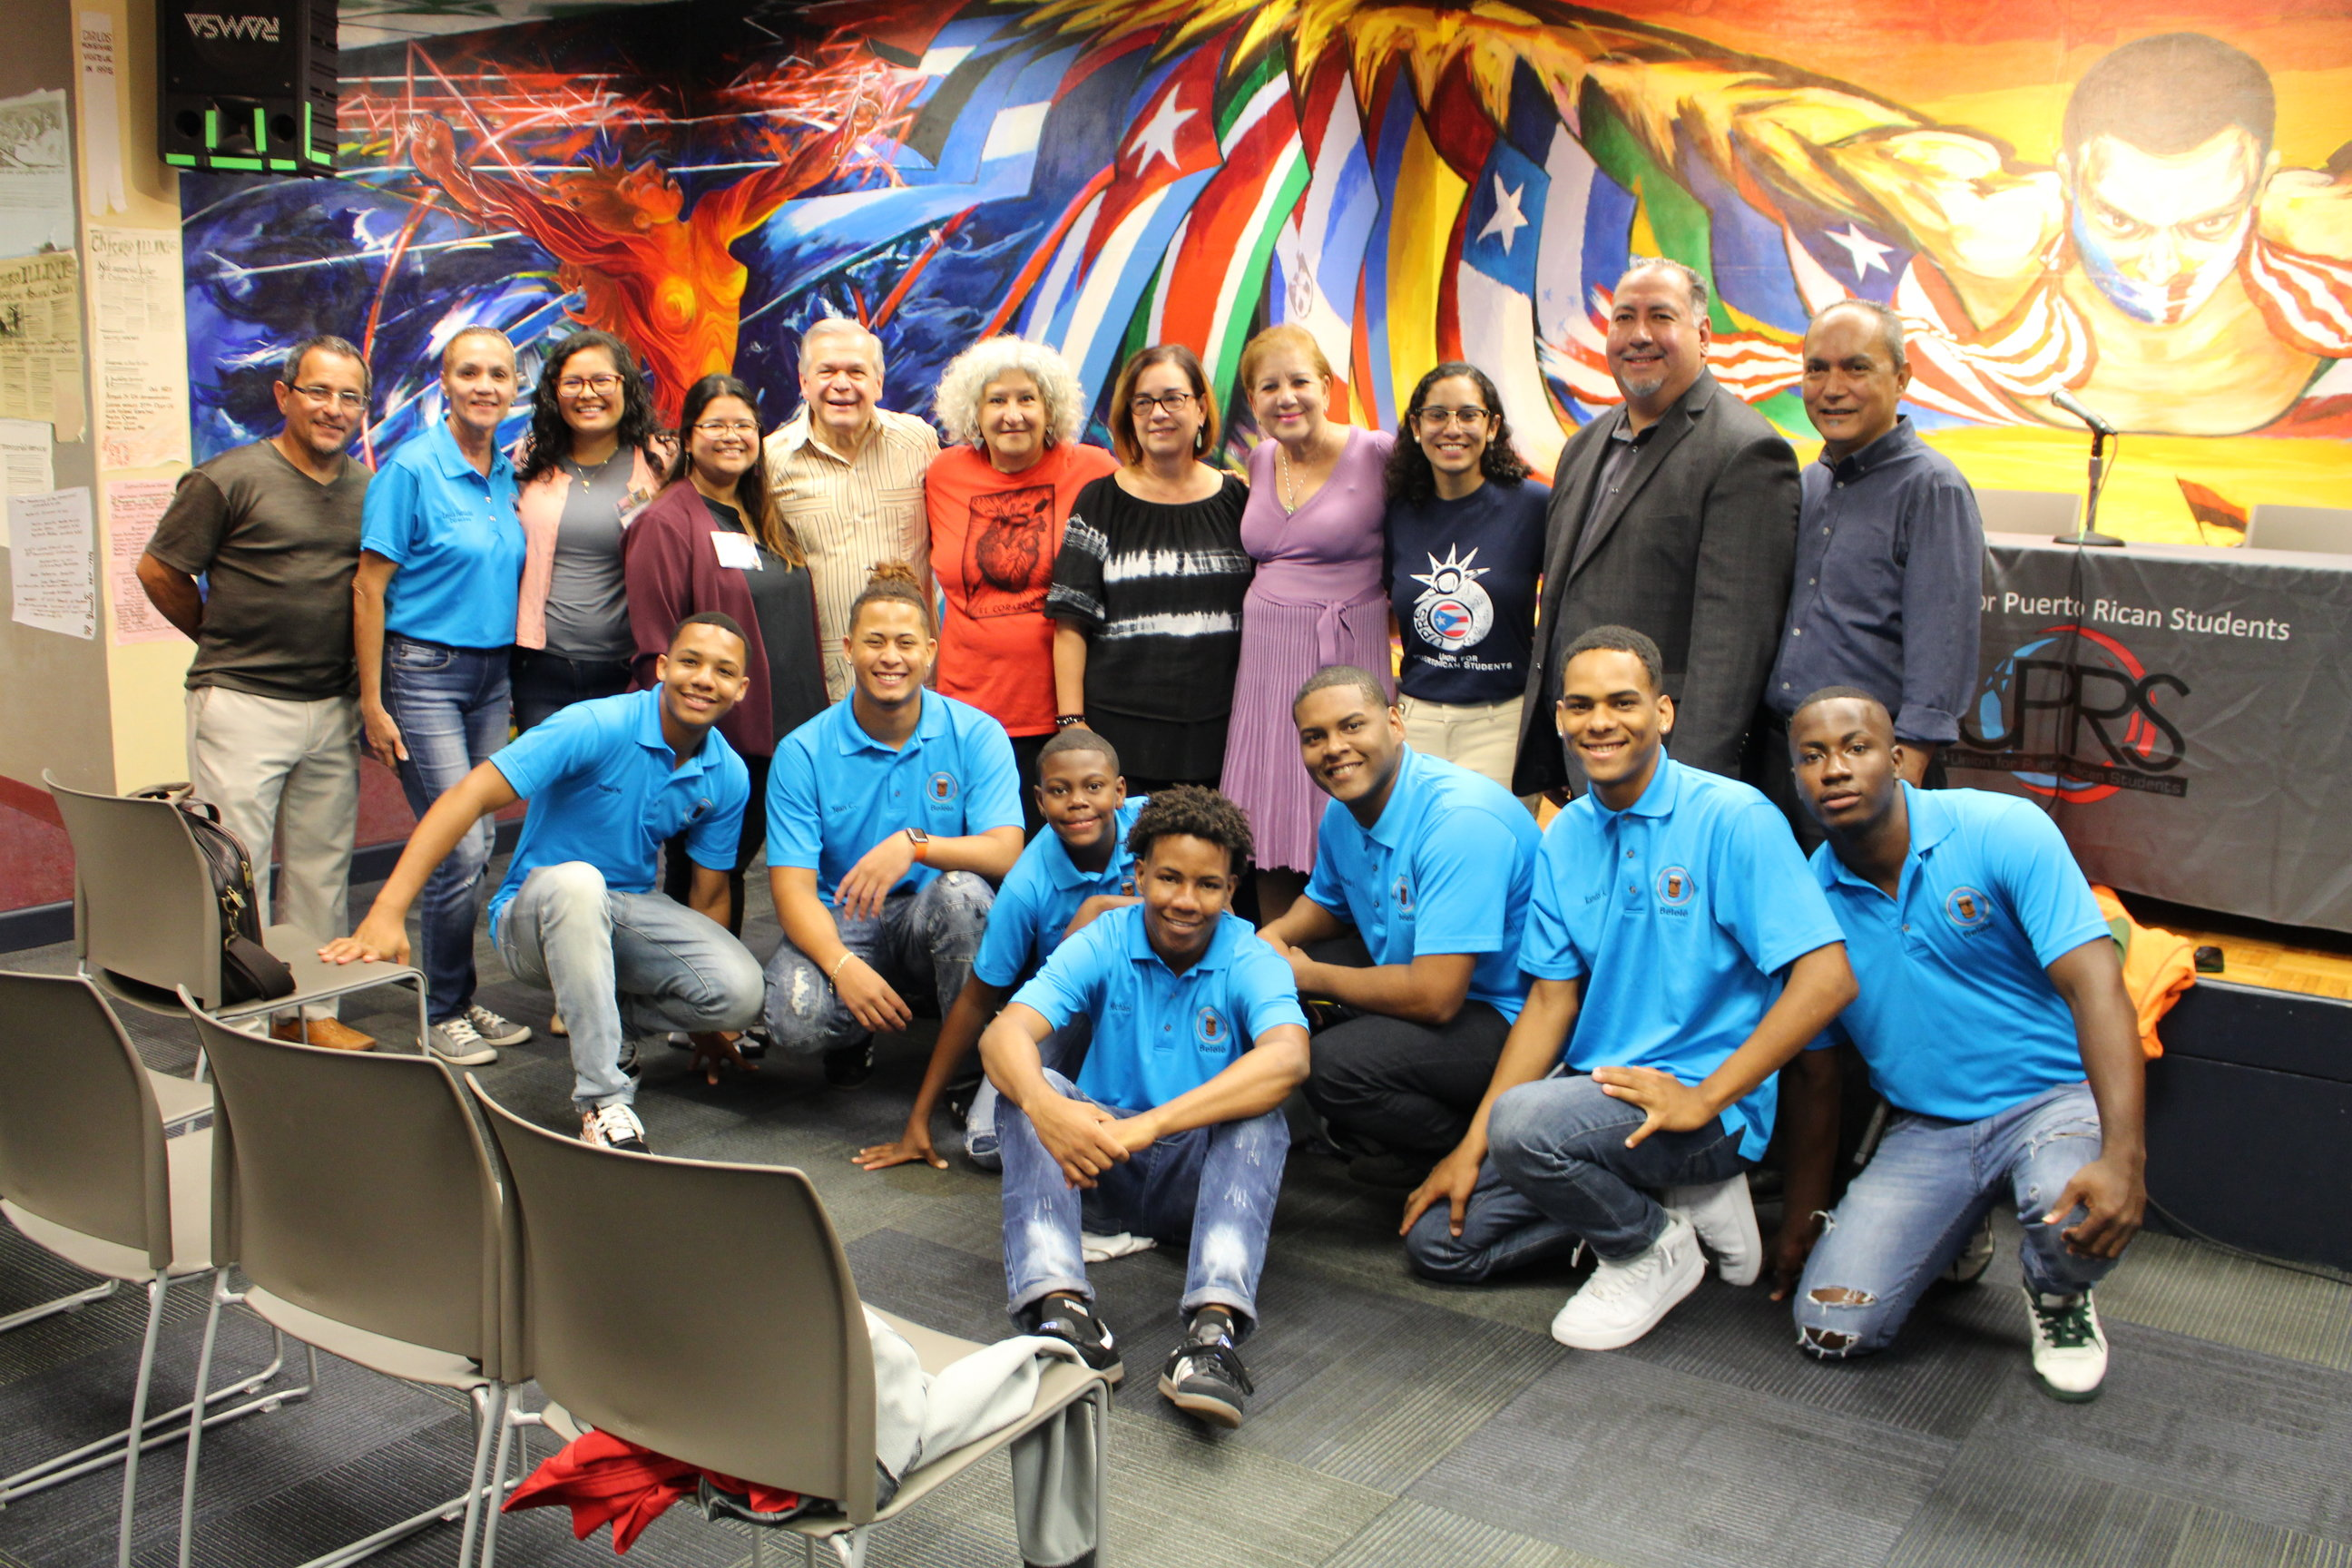 Julia M. Nazario, PRCC performers, and UIC staff and students in photo